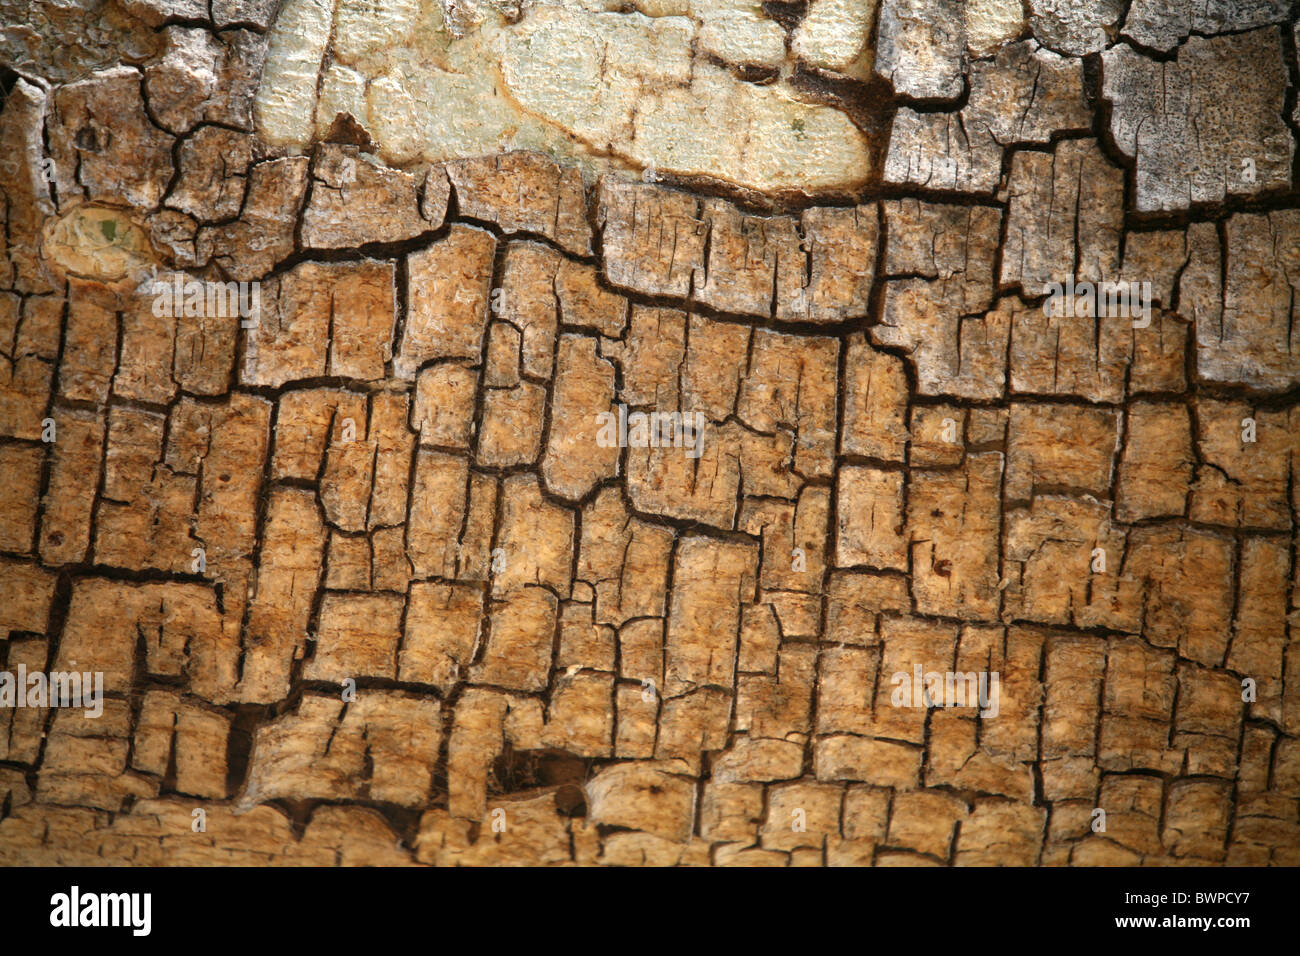 Namibia Africa Waterberg Summer 2007 Africa tree detal bark structure nature surface - Stock Image